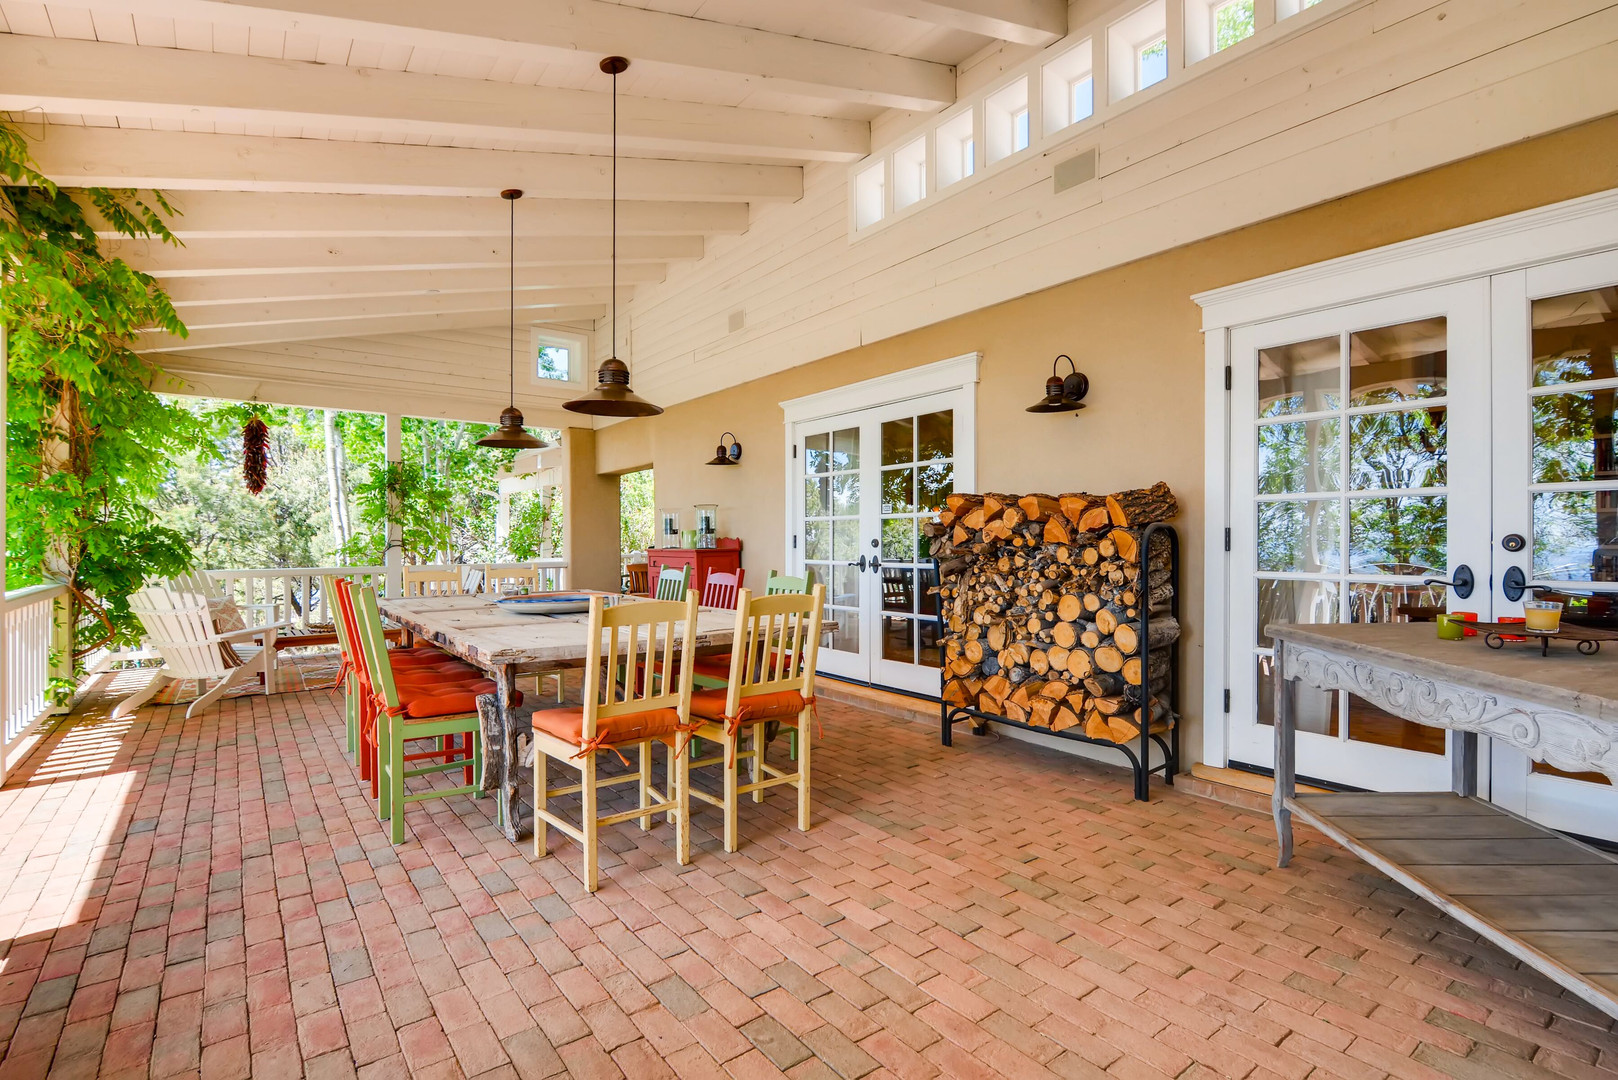 Double Arrow | Territorial Style Outdoor Dining